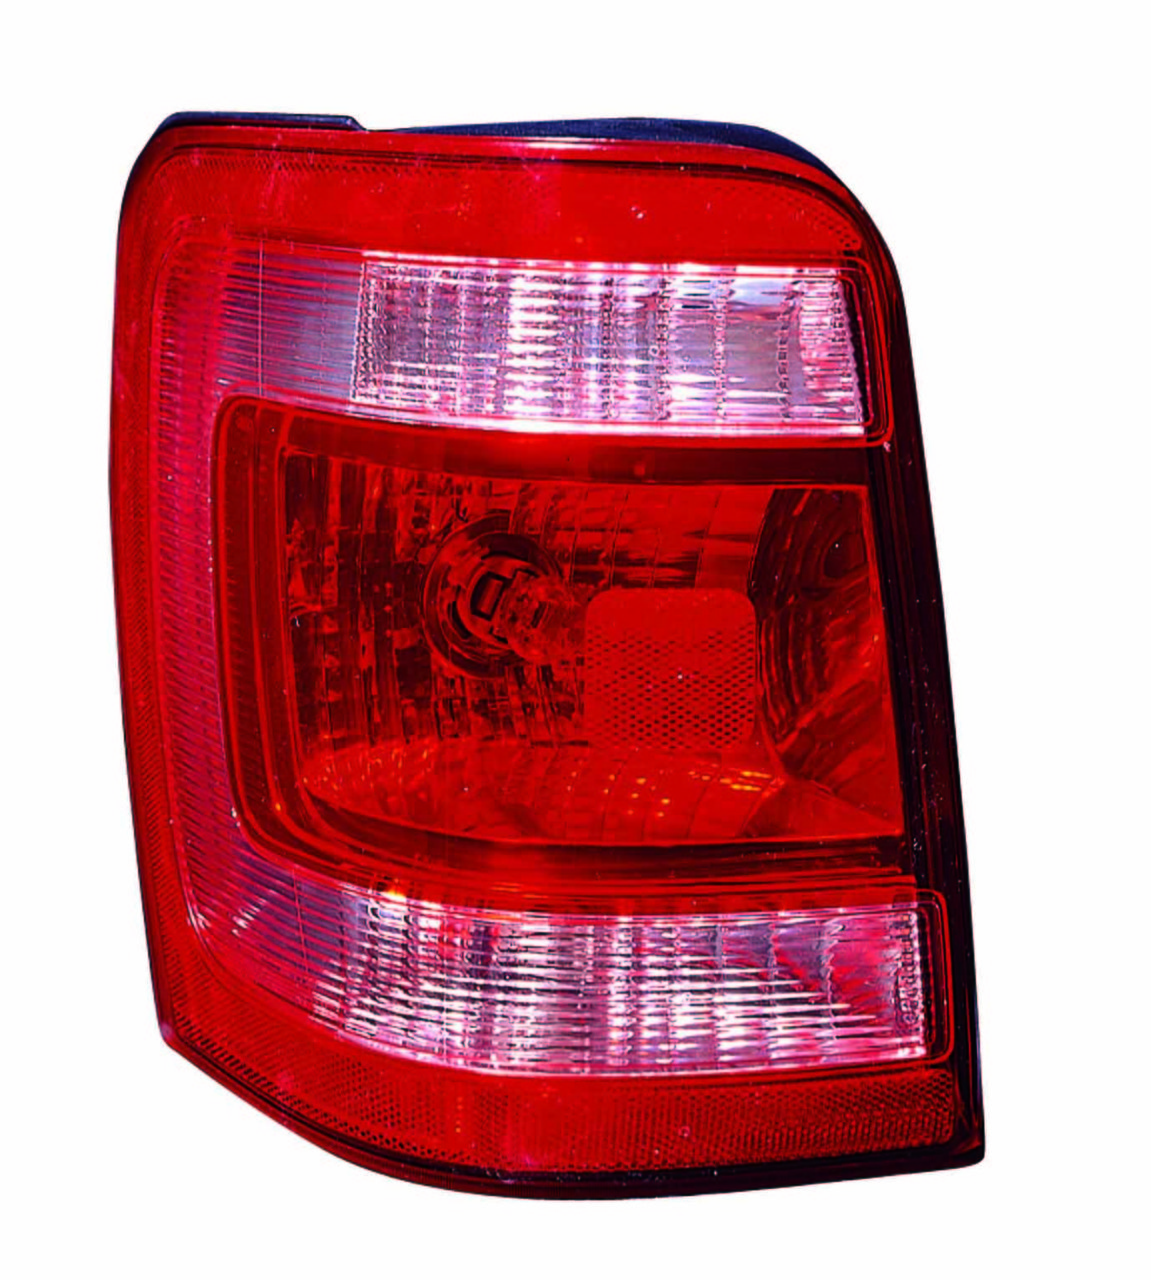 Ford Escape 2008 2009 2010 2011 tail light left driver